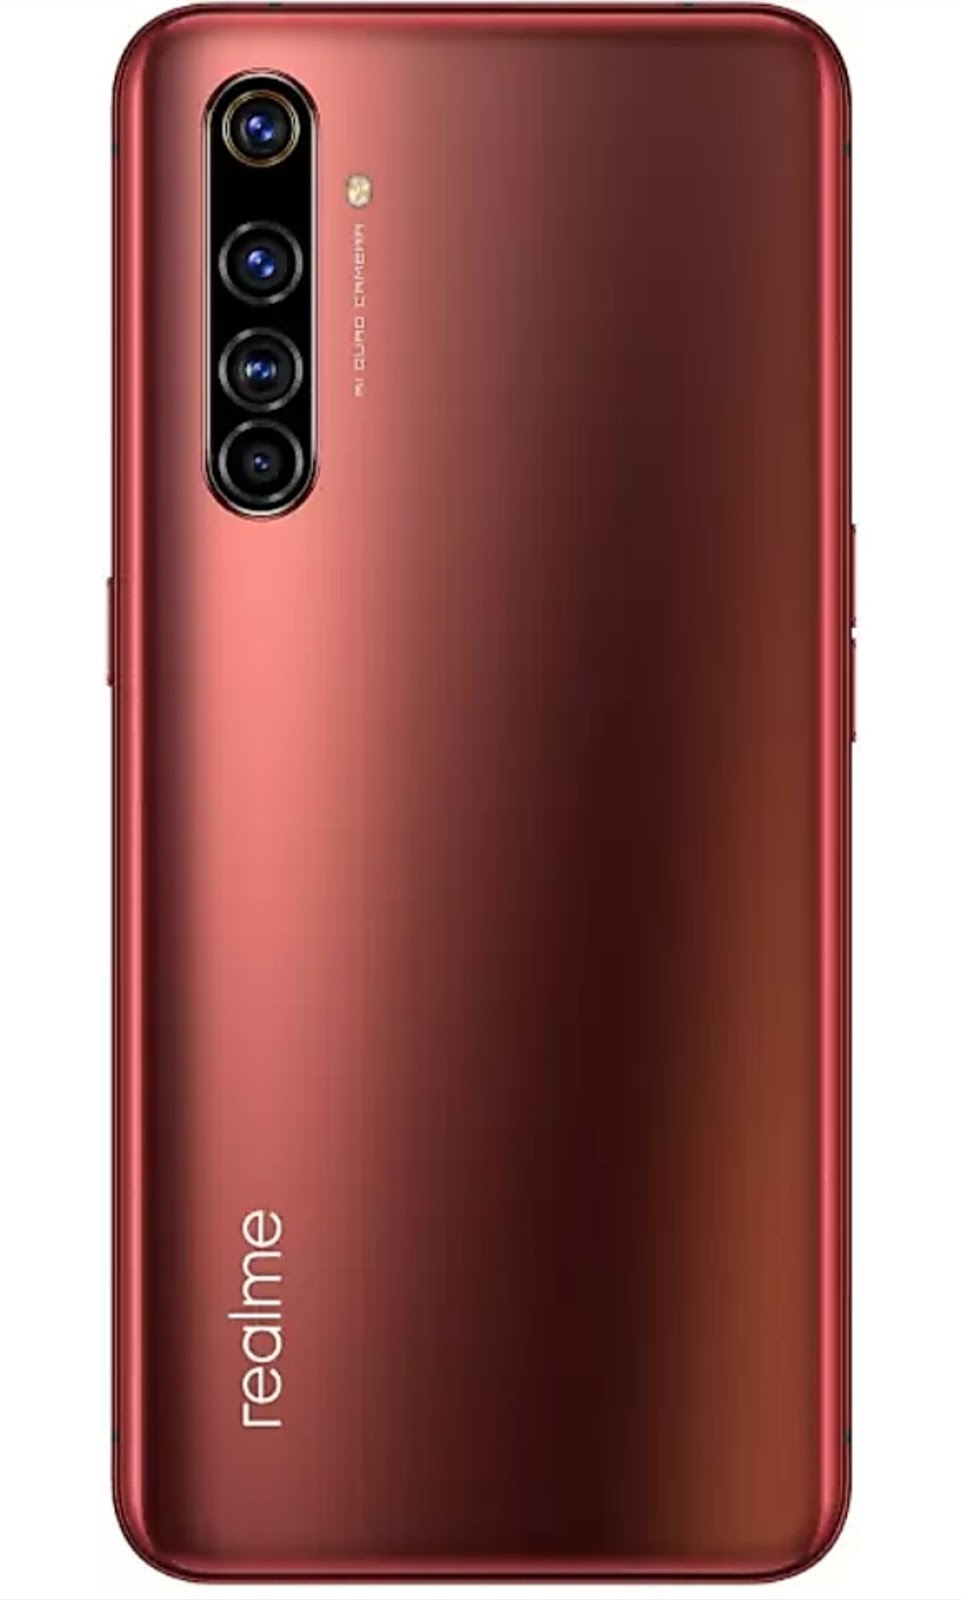 realme x50 pro launch date in india, realme x50 pro 5g price